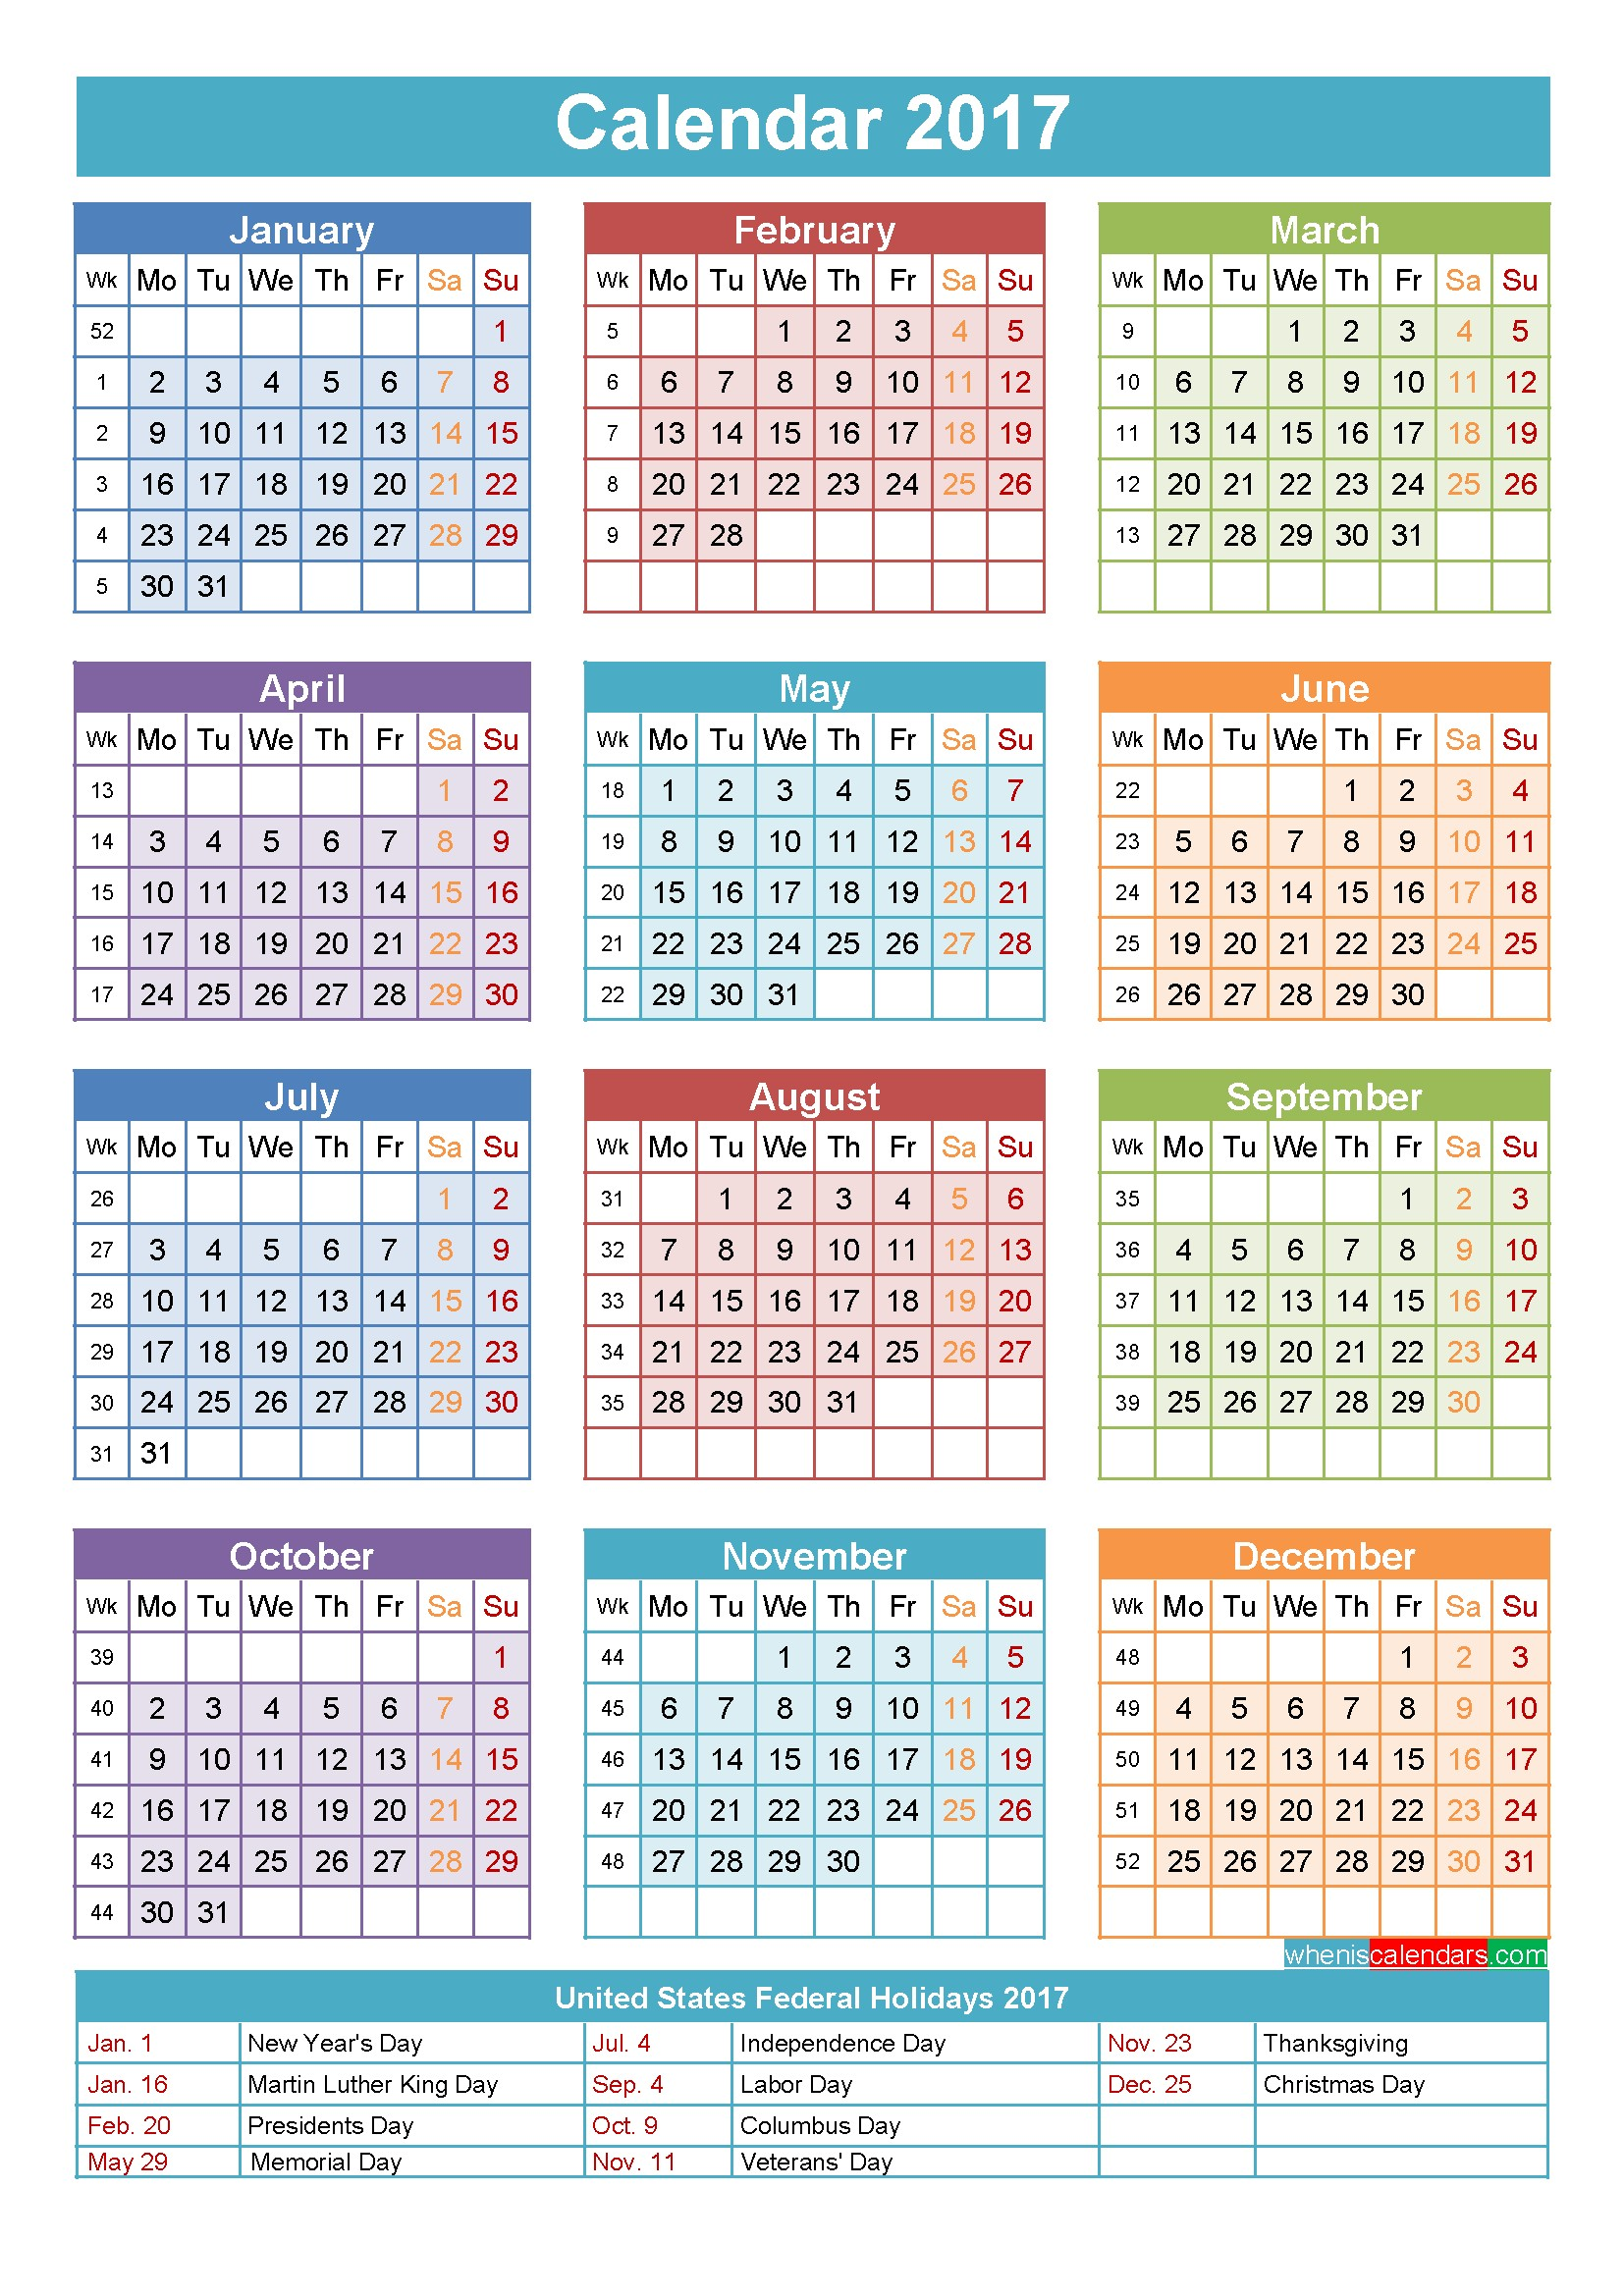 Yearly Printable Calendars 2017 Calendar with Holidays Printable Yearly Calendar